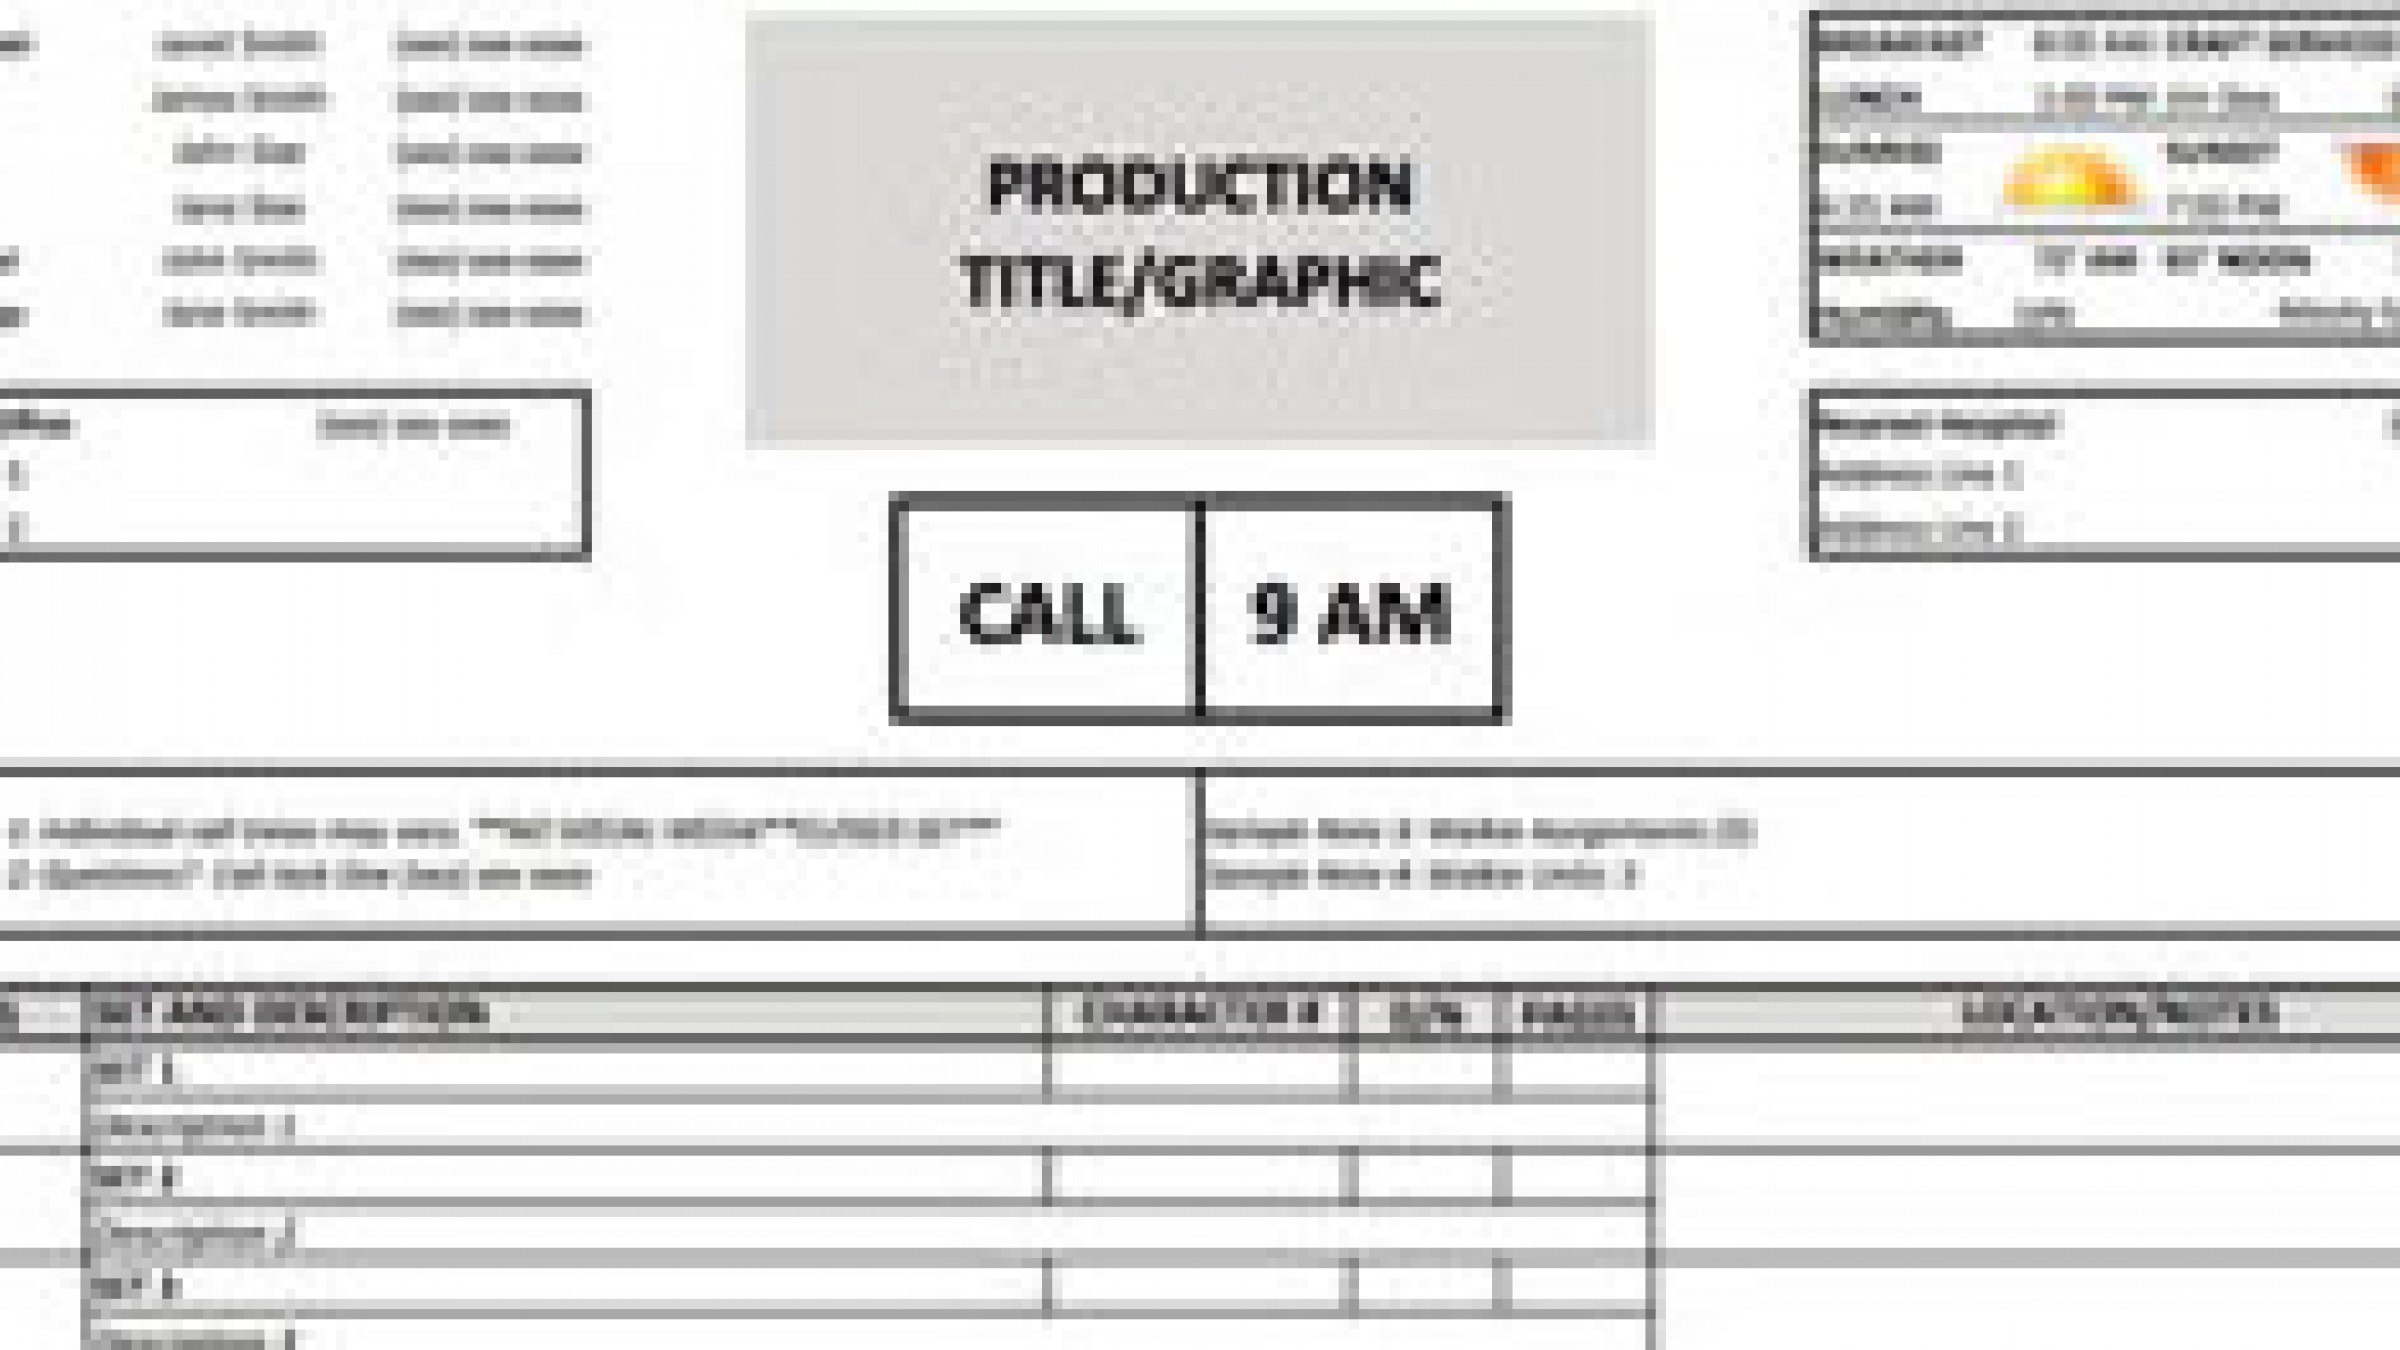 Download A Free Call Sheet Template To Get Your Film Crew On The Call Sheet  Template Lan Bui Download Free Call Sheet Template Cast Crew Call Free Job  Card ...  Job Sheet Template Free